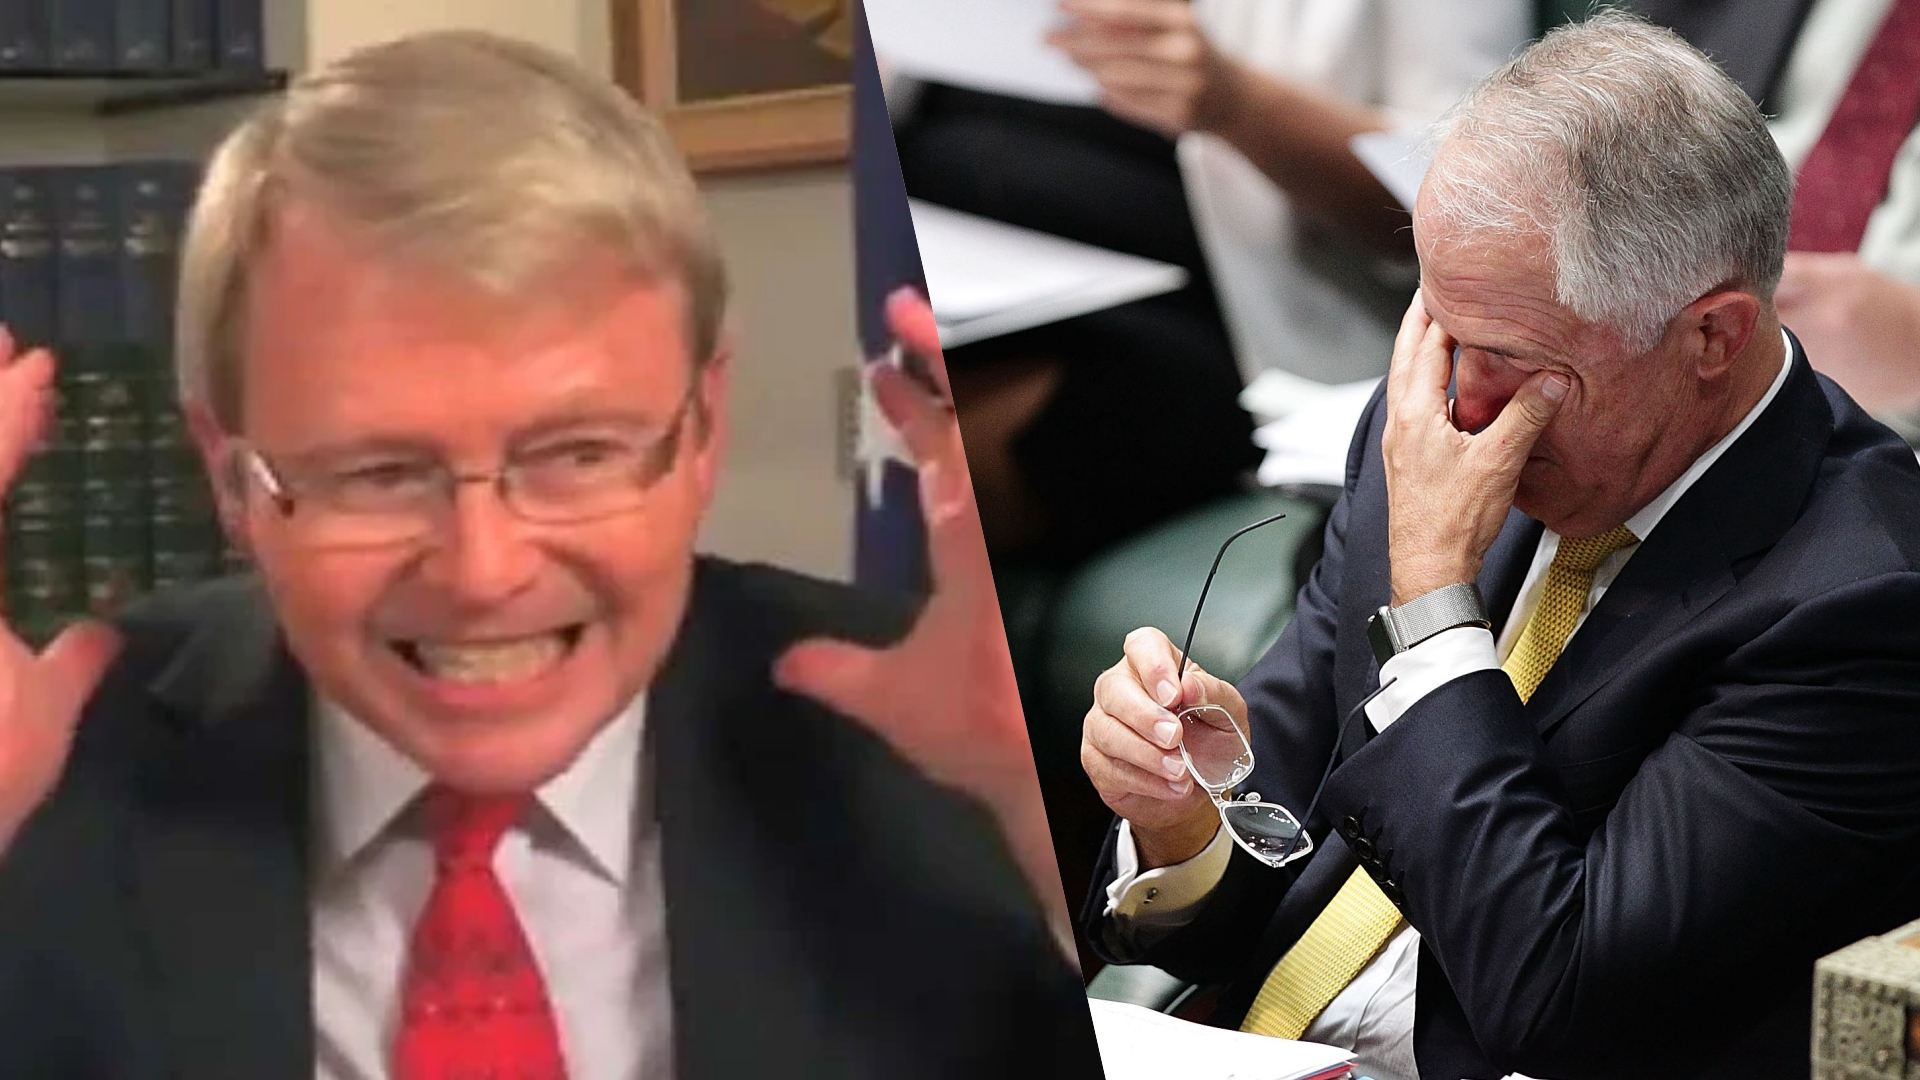 Rudd and Turnbull allies in fake news